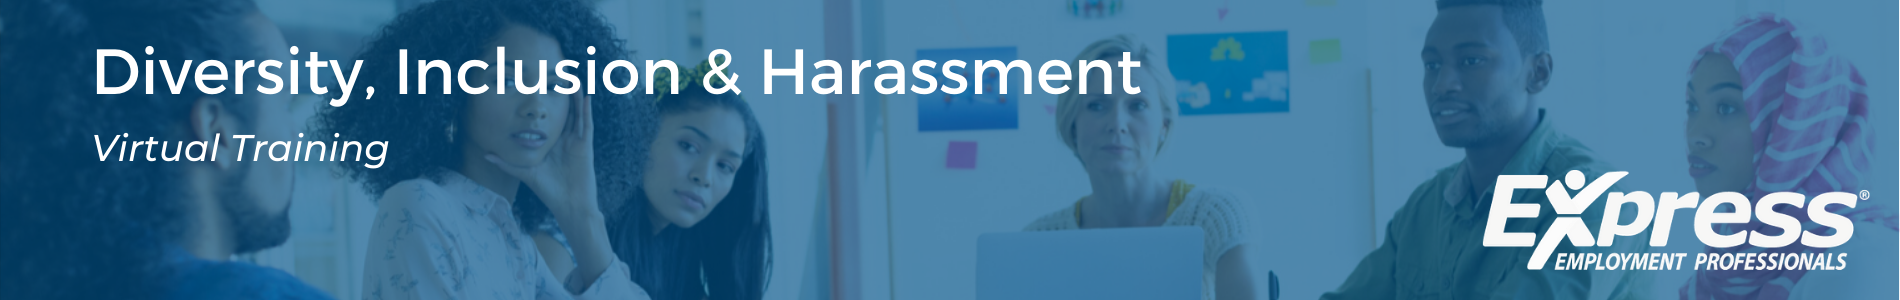 Virtual Training - Diversity, Inclusion, Harassment